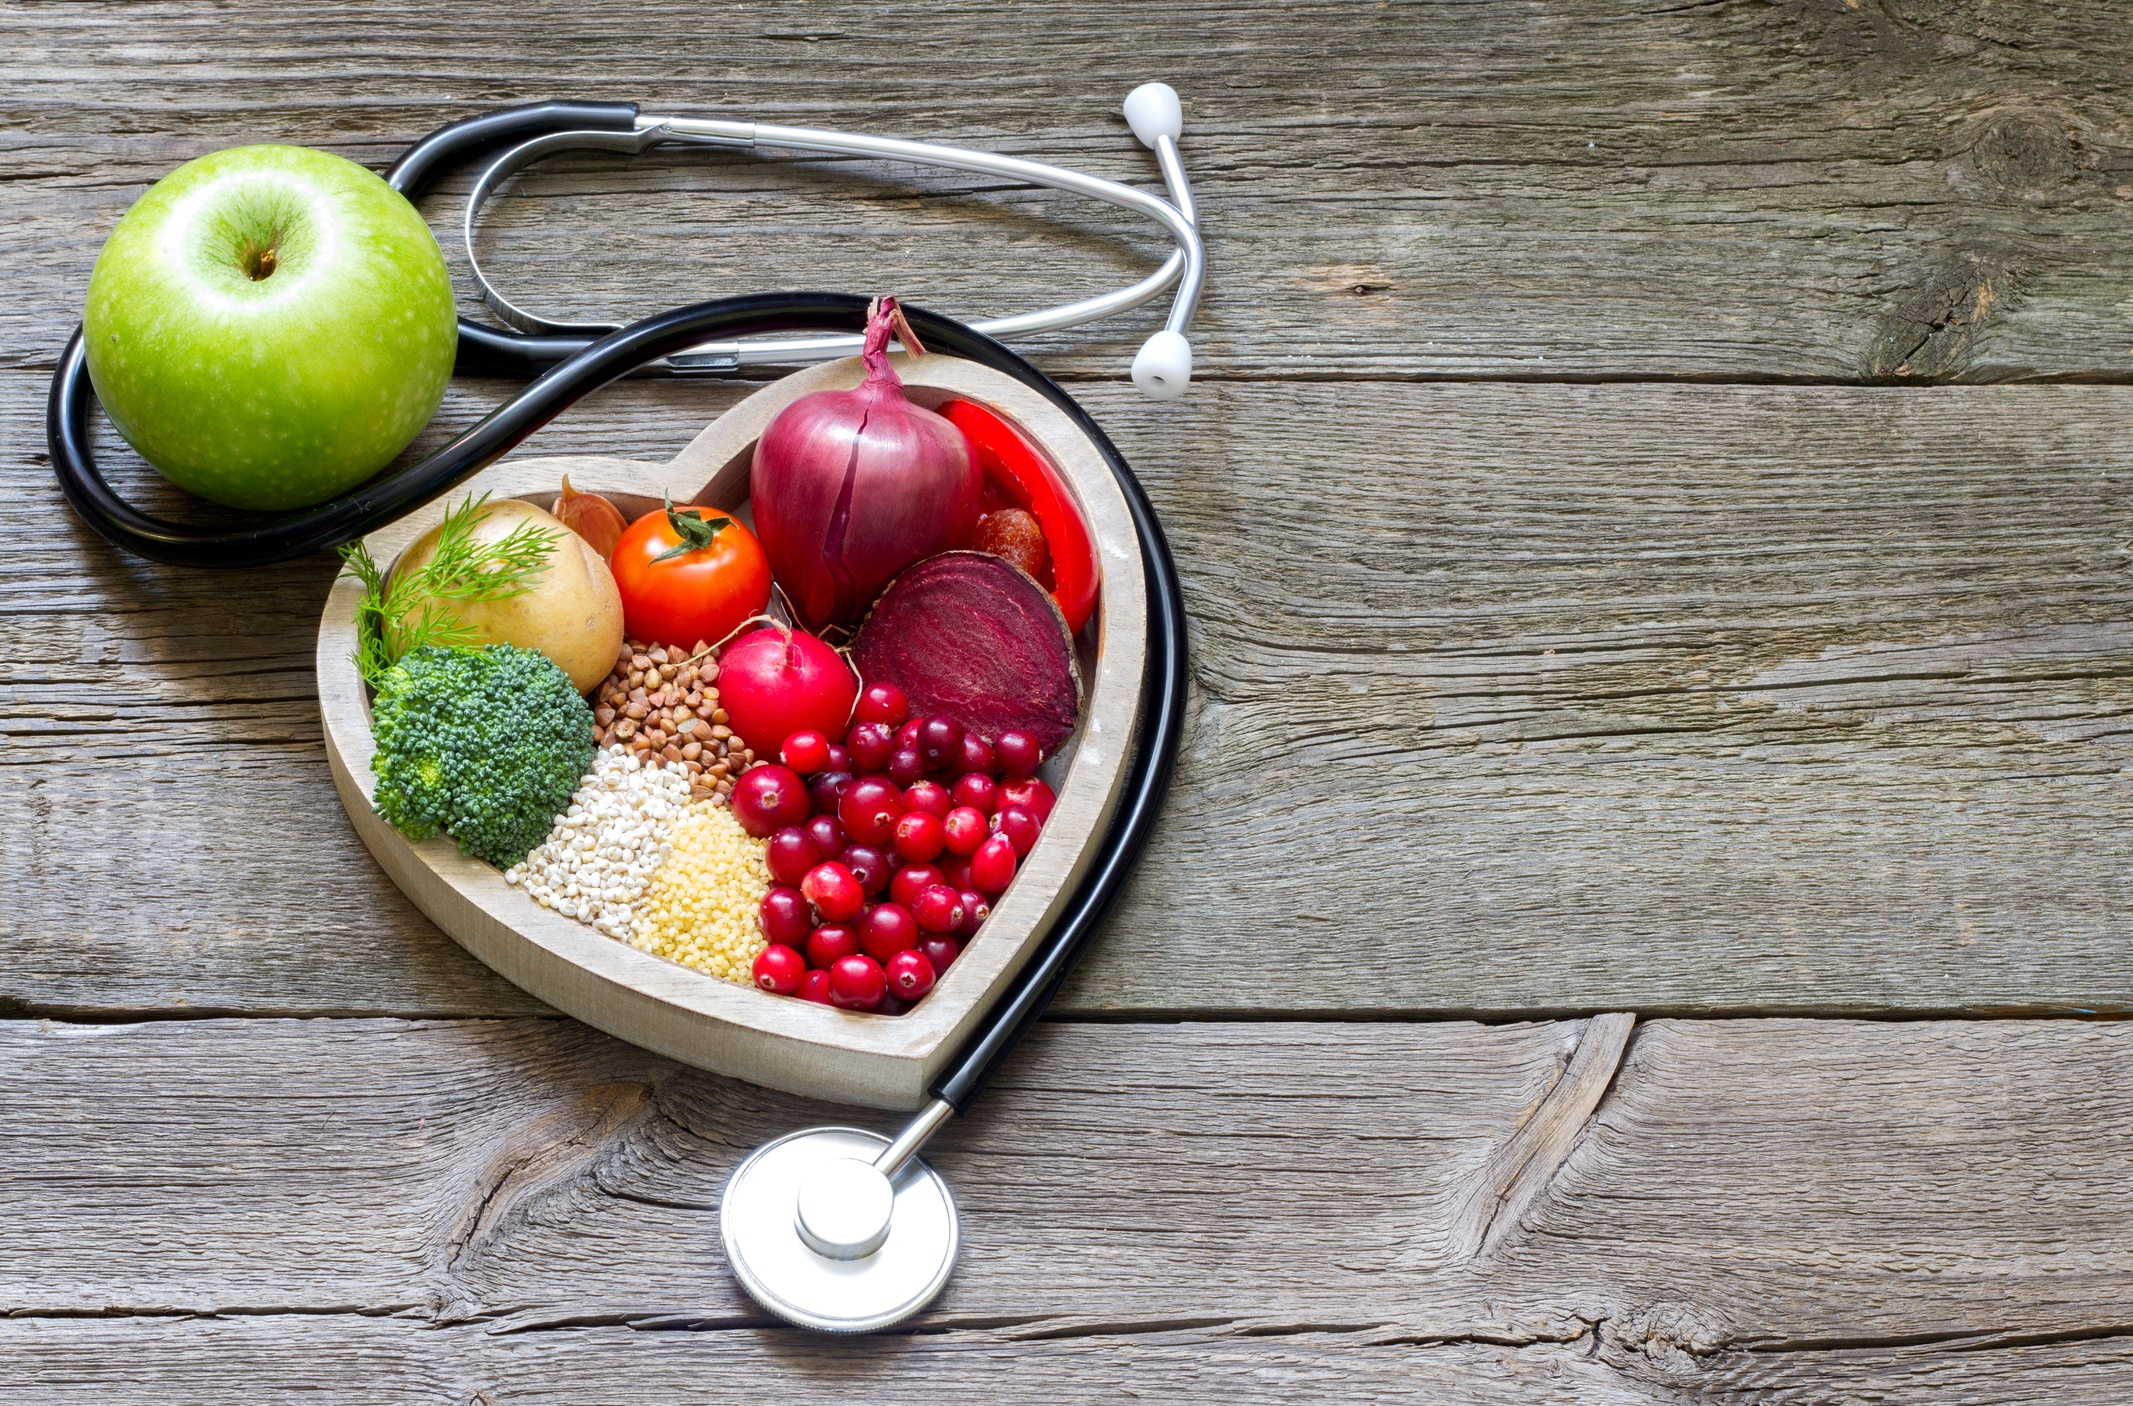 Traveling for Locum Tenens Work? Try These 5 Tips for Better Eating